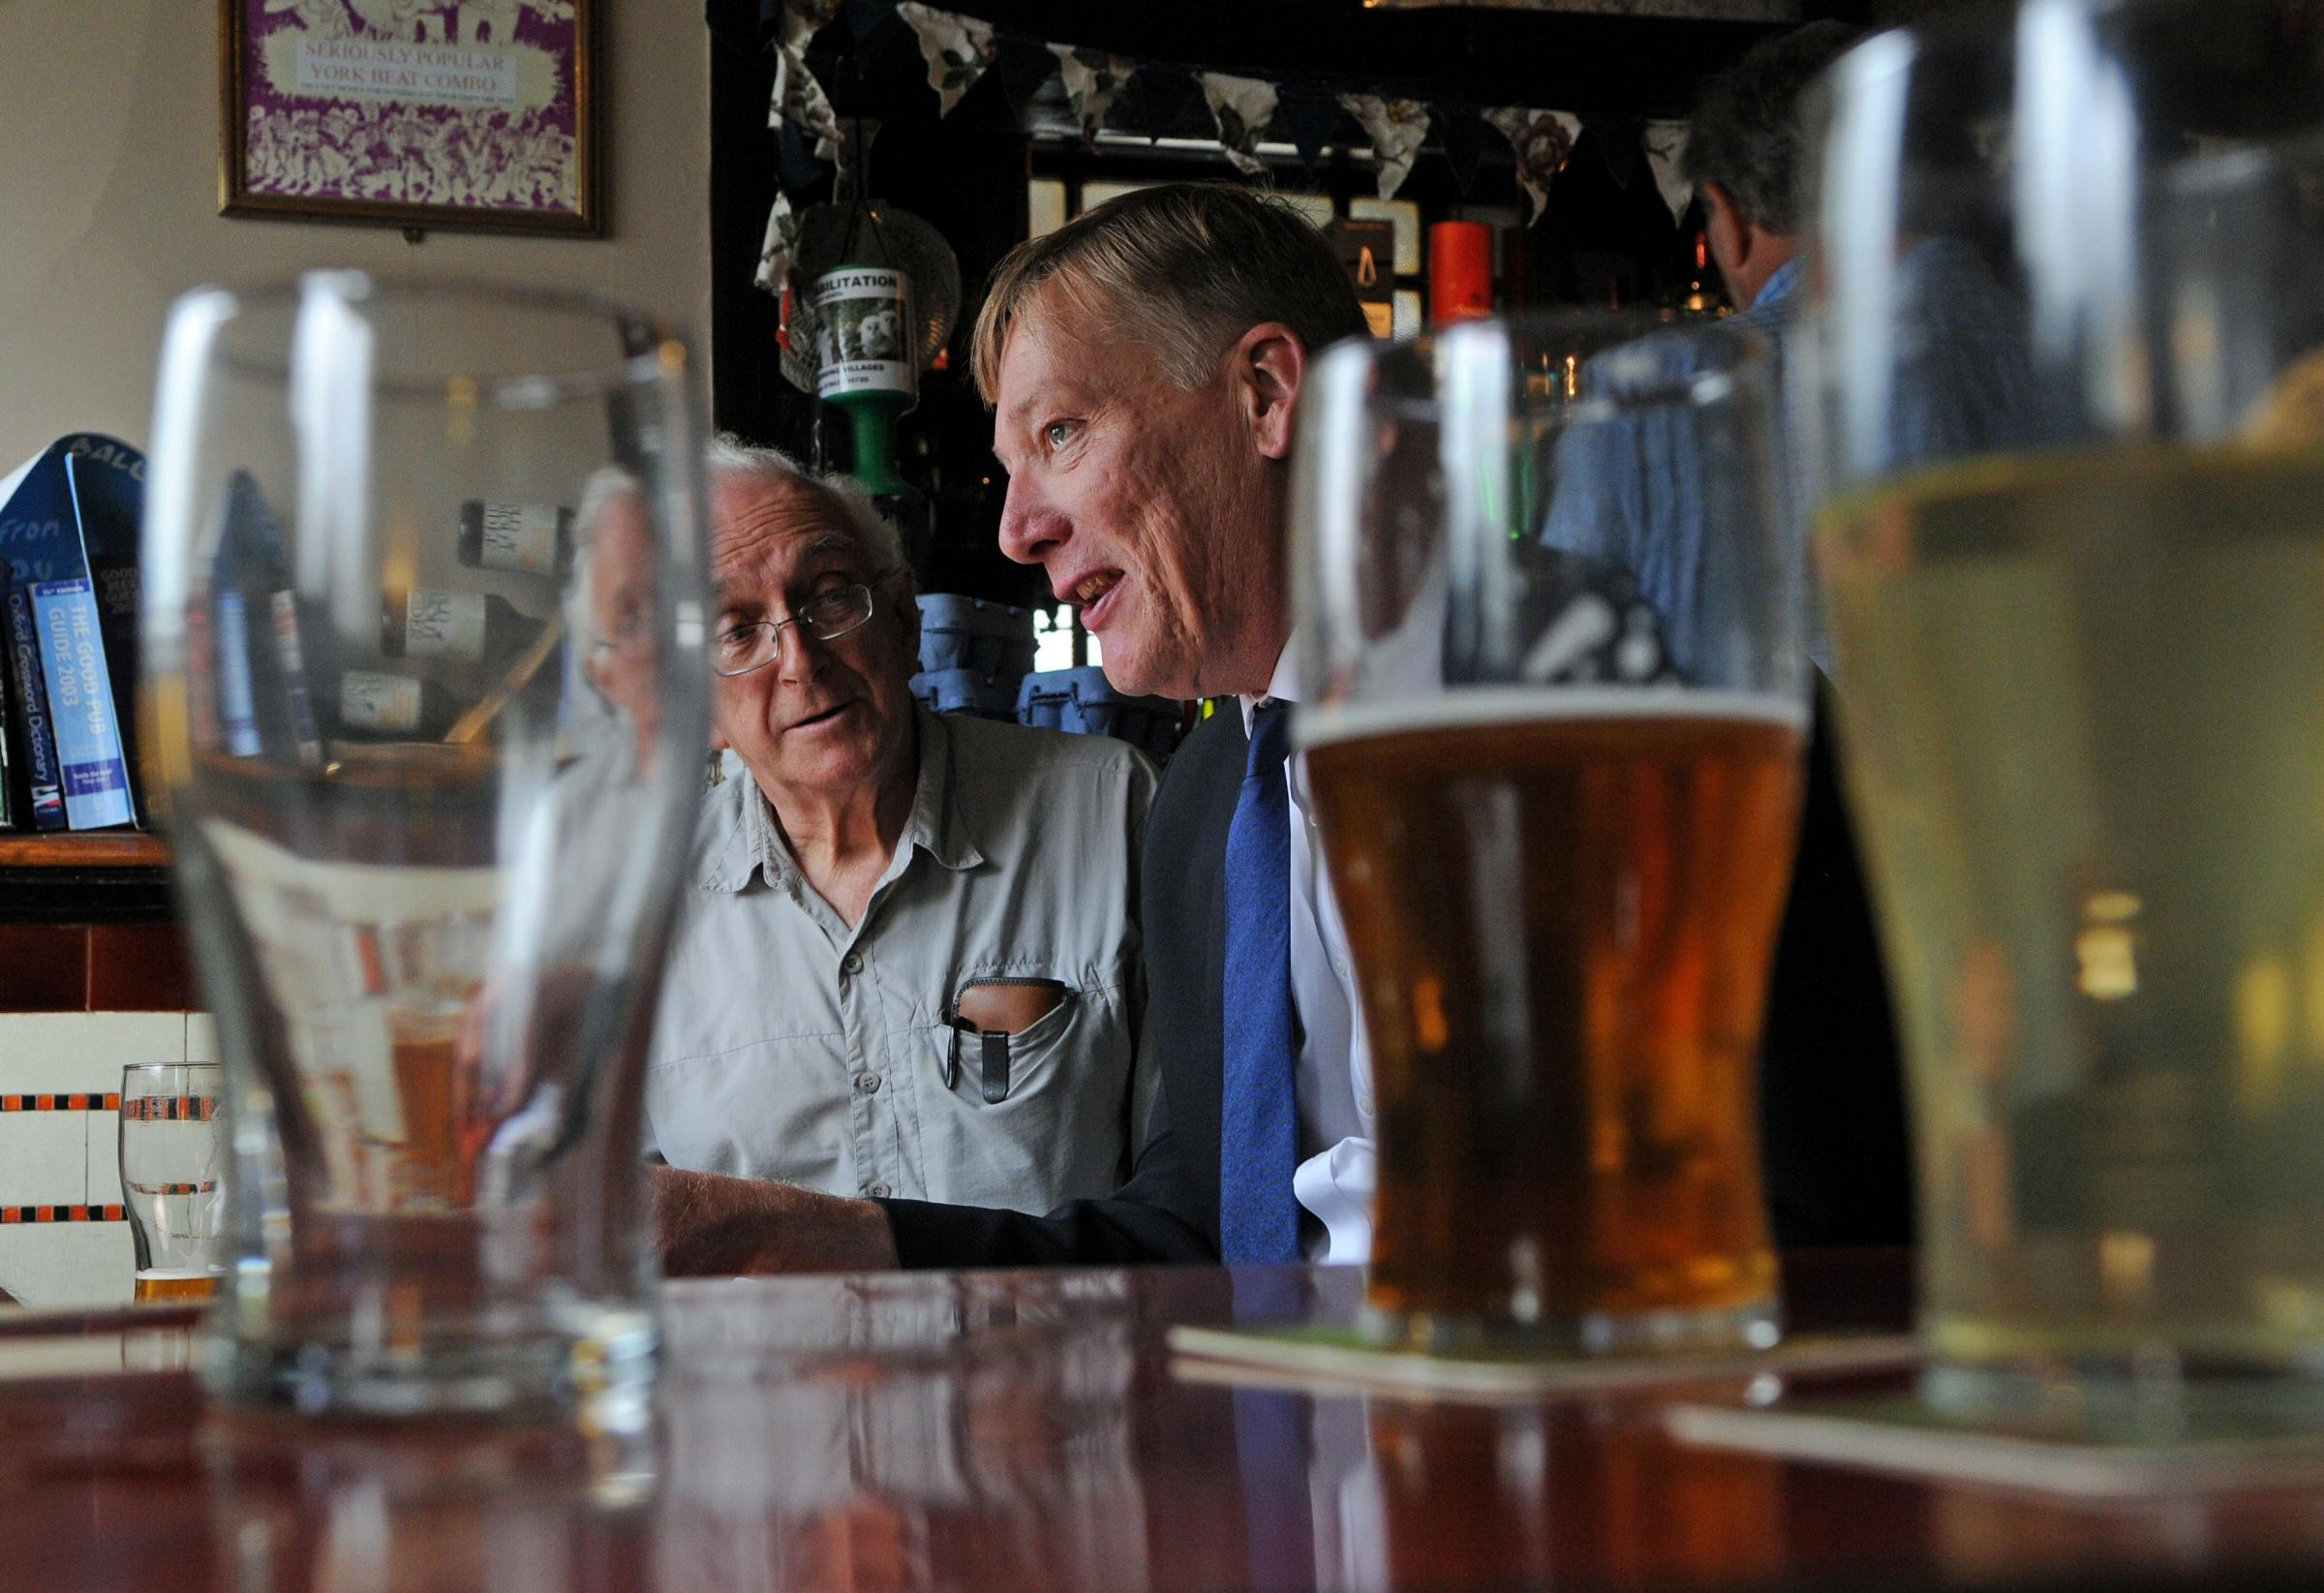 Community pubs minister Kris Hopkins chats with customers during his visit to the Golden Ball in Bishophill, York